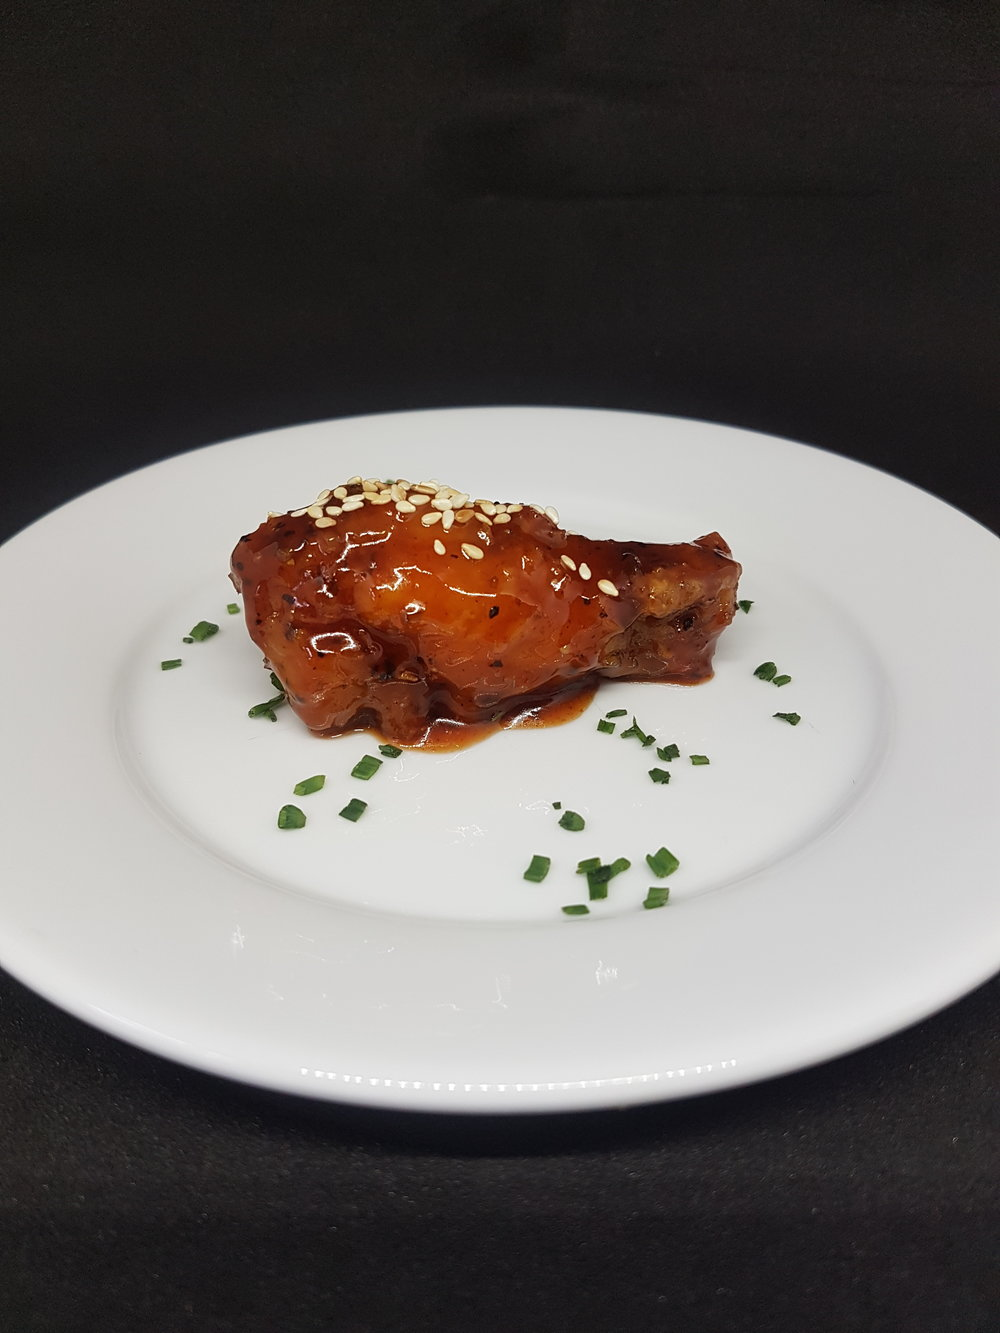 SRIRACHA CHICKEN WING